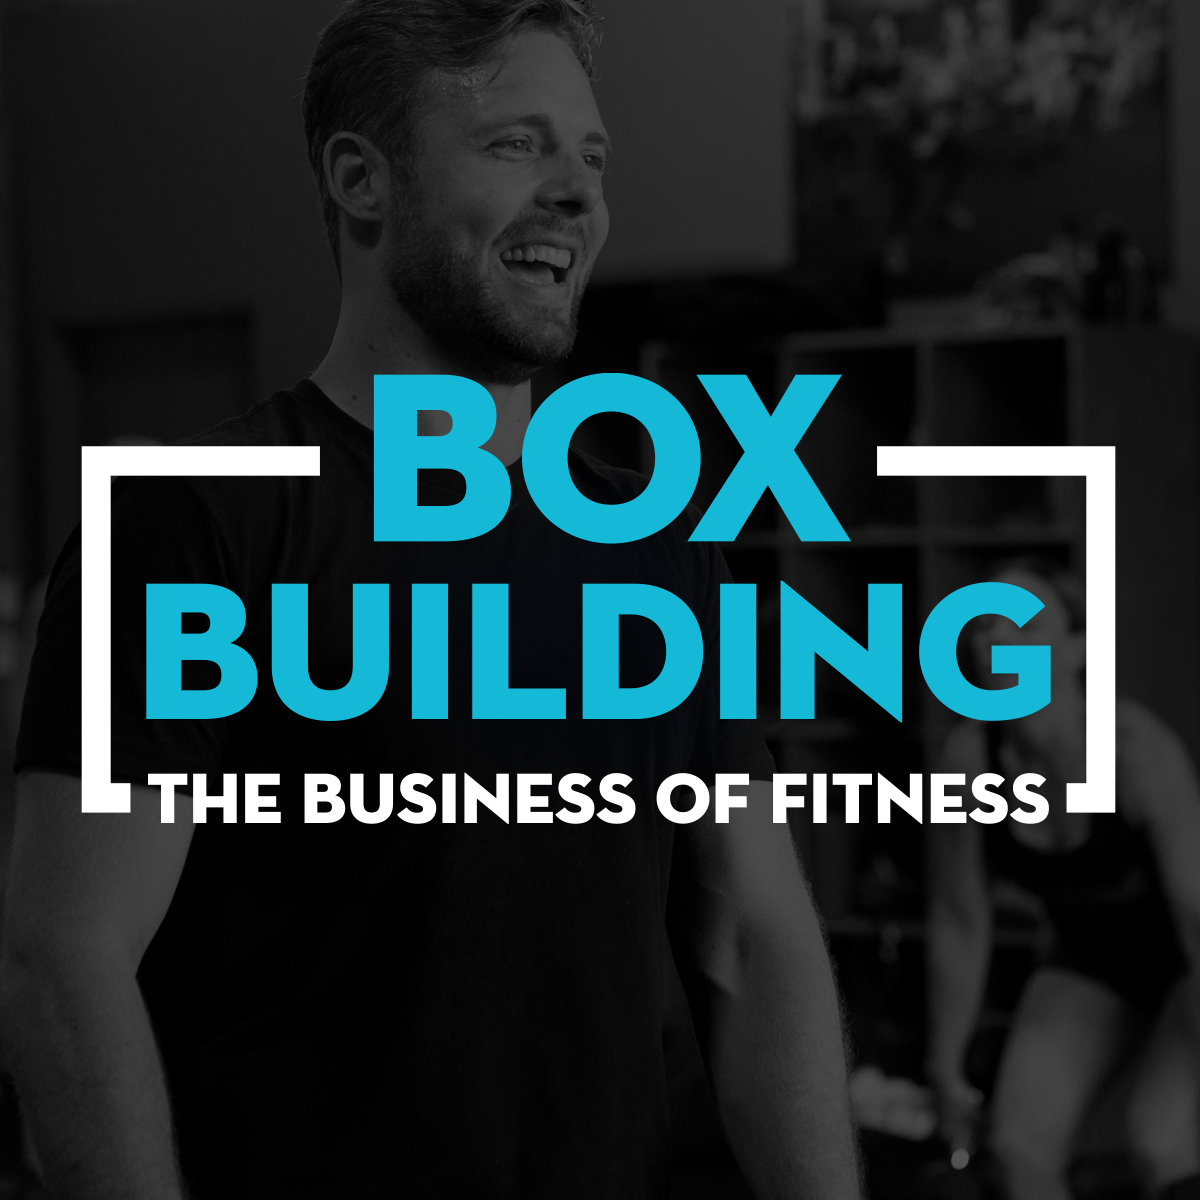 Box Building – The Business Of Fitness